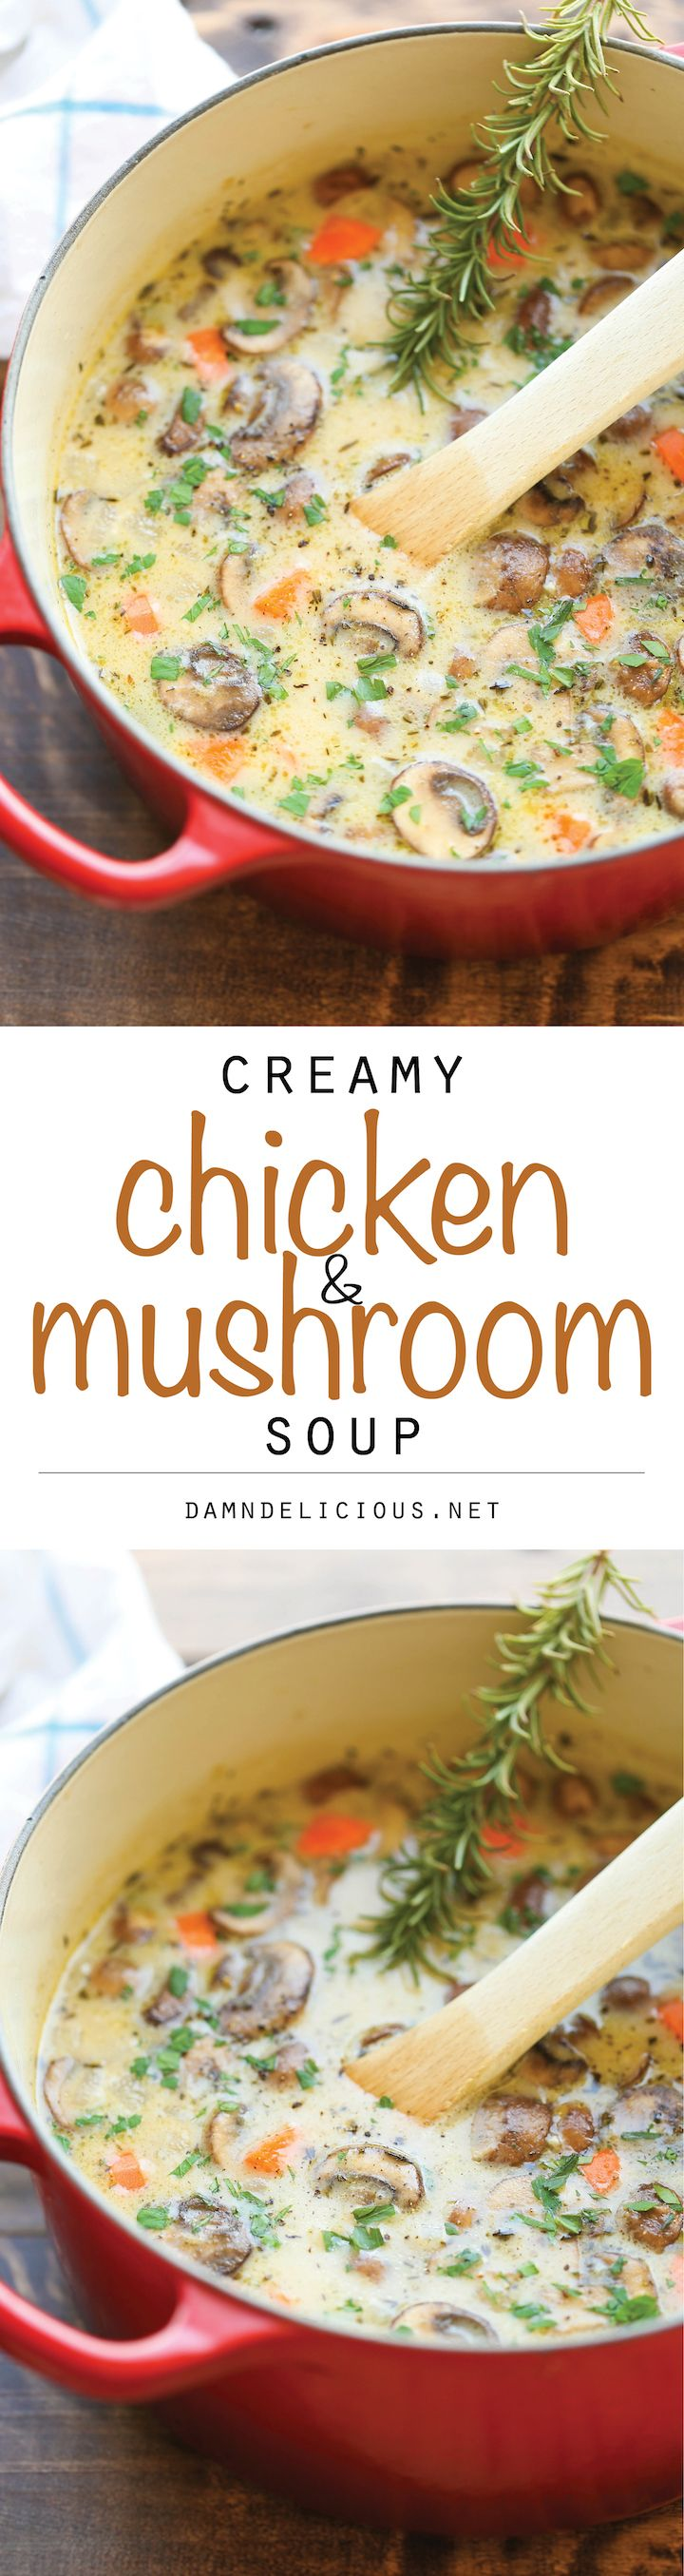 Creamy Chicken and Mushroom Soup - So cozy, so comforting and just so creamy. Best of all, this is made in 30 min from start to finish - so quick and easy!